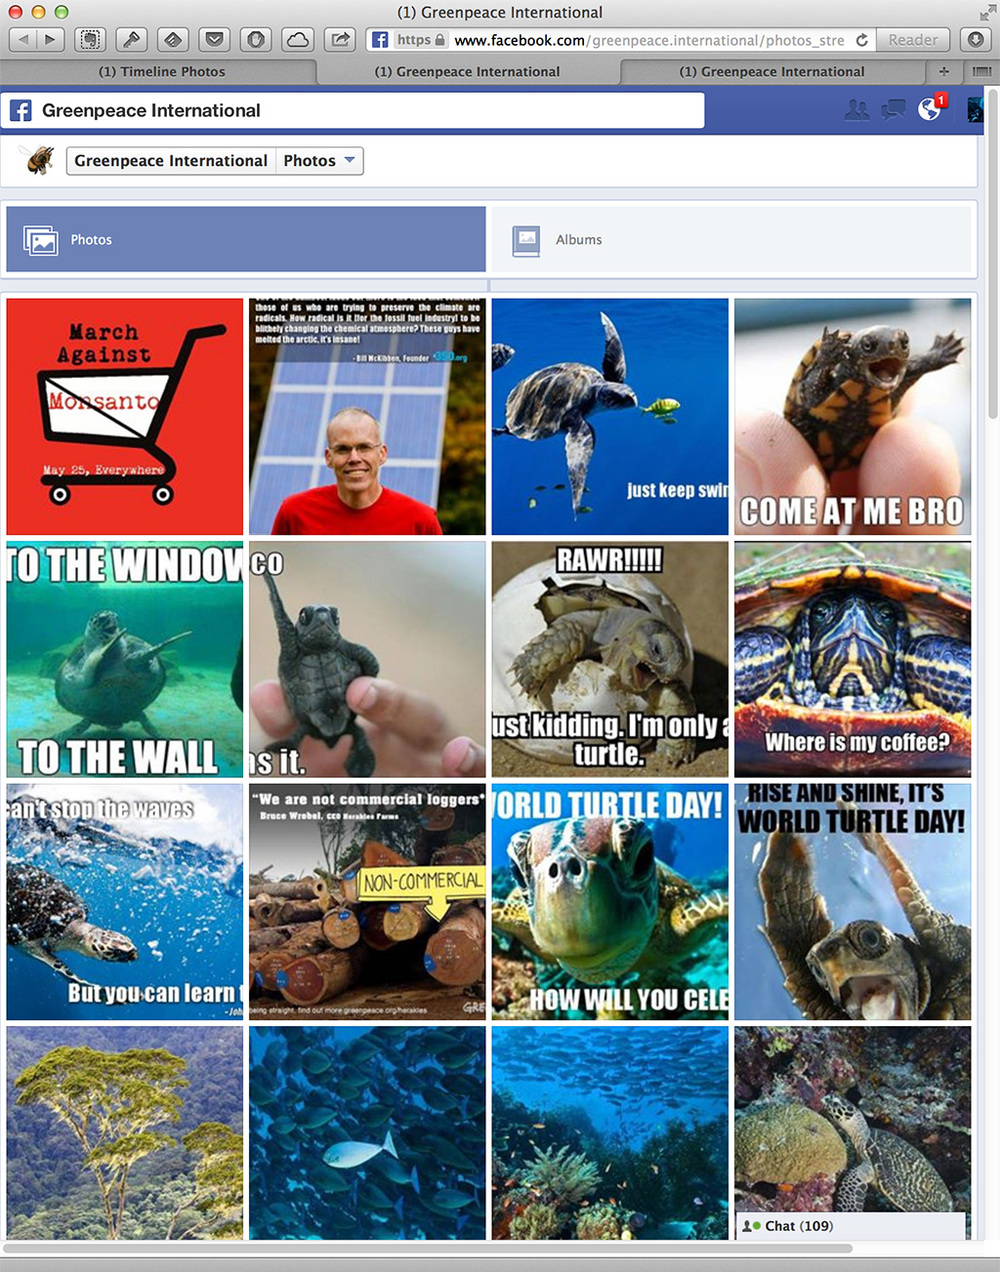 Greenpeace's Facebook Timeline photos